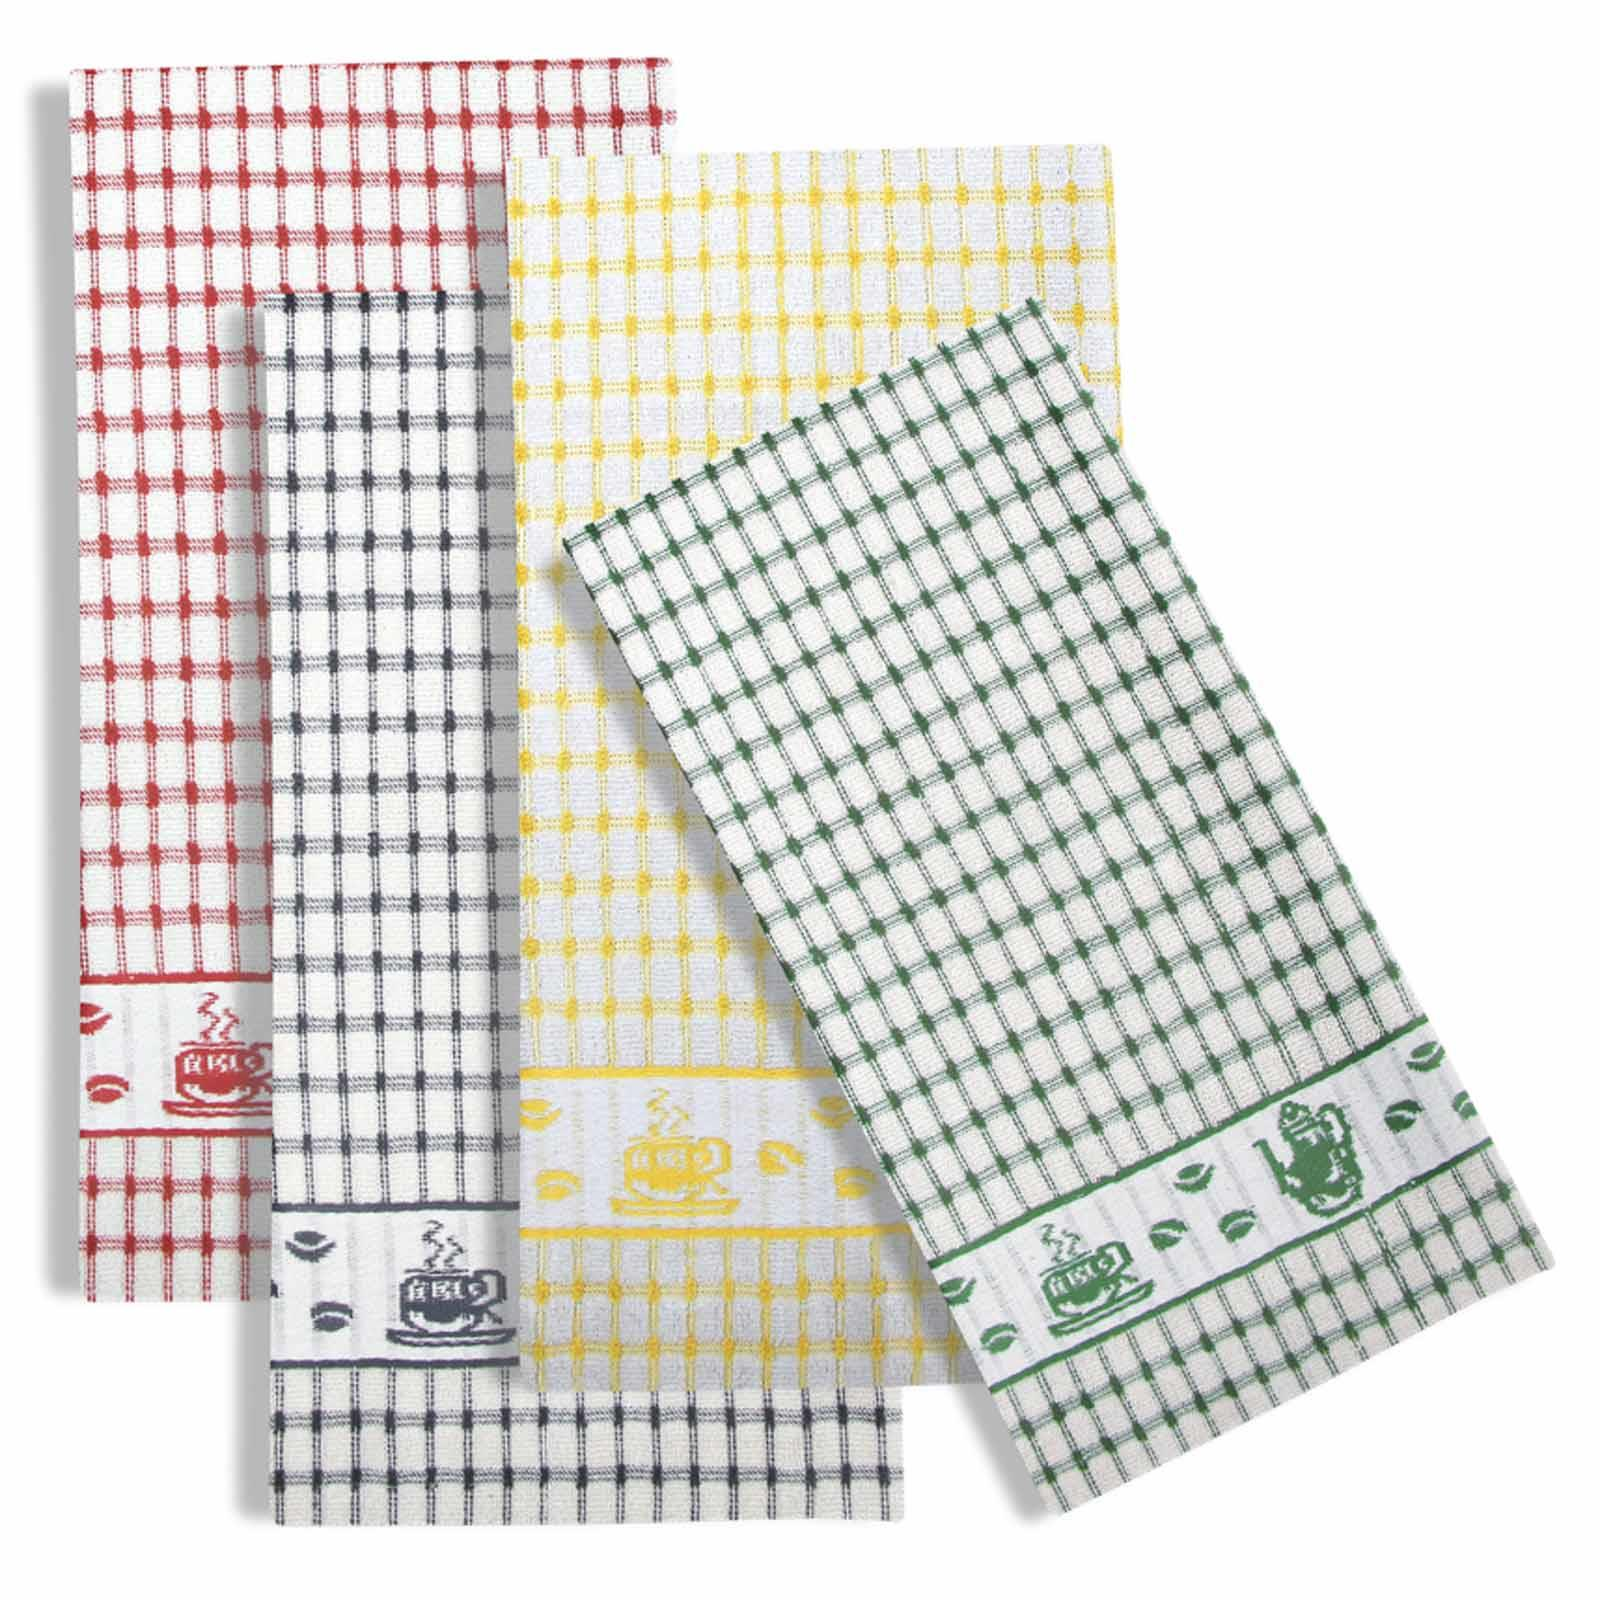 Packs-of-2-4-6-12-Tea-Towels-100-Cotton-Terry-Kitchen-Dish-Drying-Towel-Sets thumbnail 82